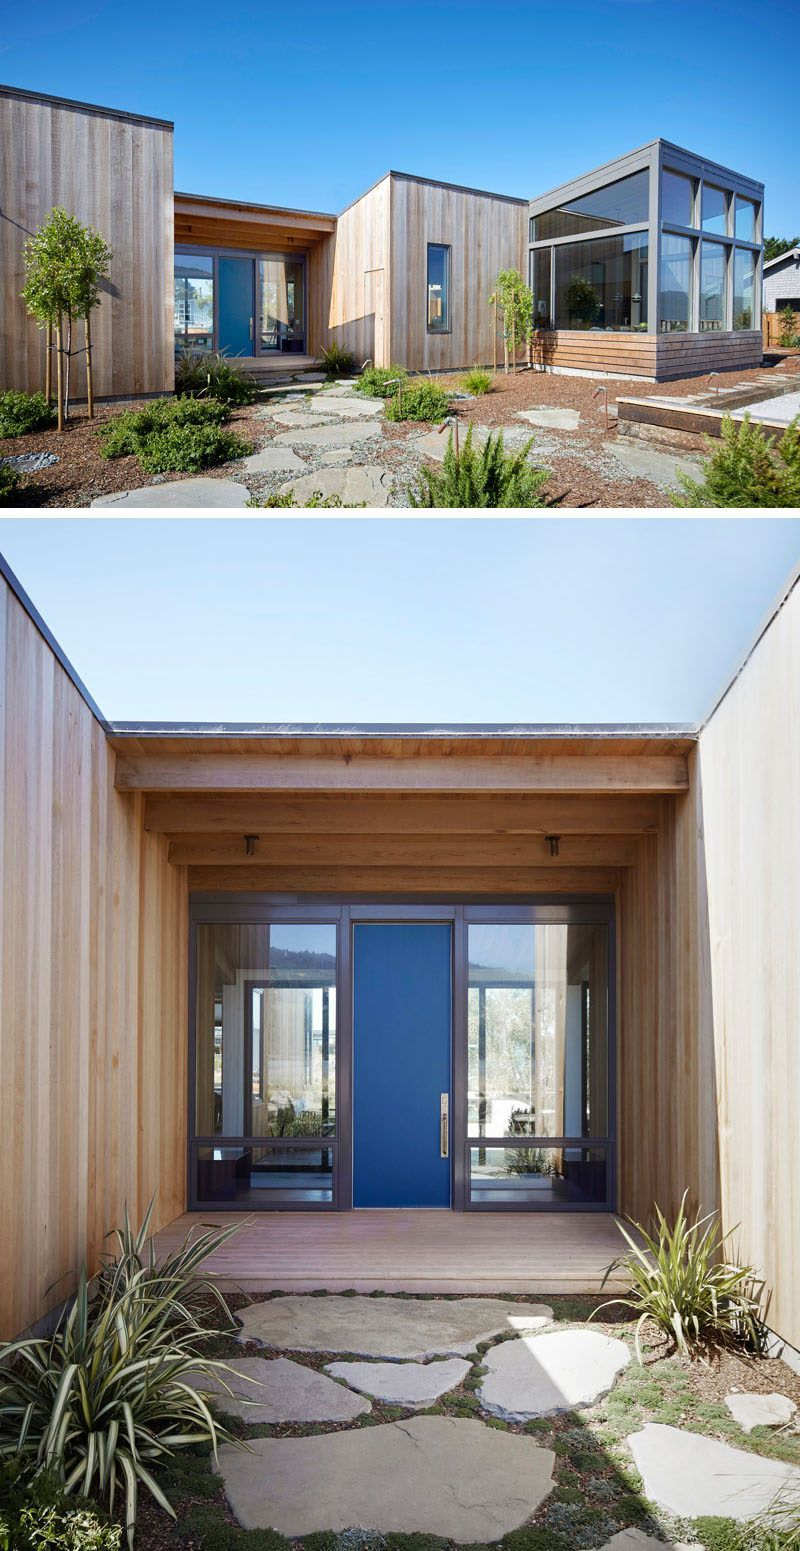 At the front of this house minimal landscaping with stepping stones guides you to the blue front door that adds a pop of color to the home